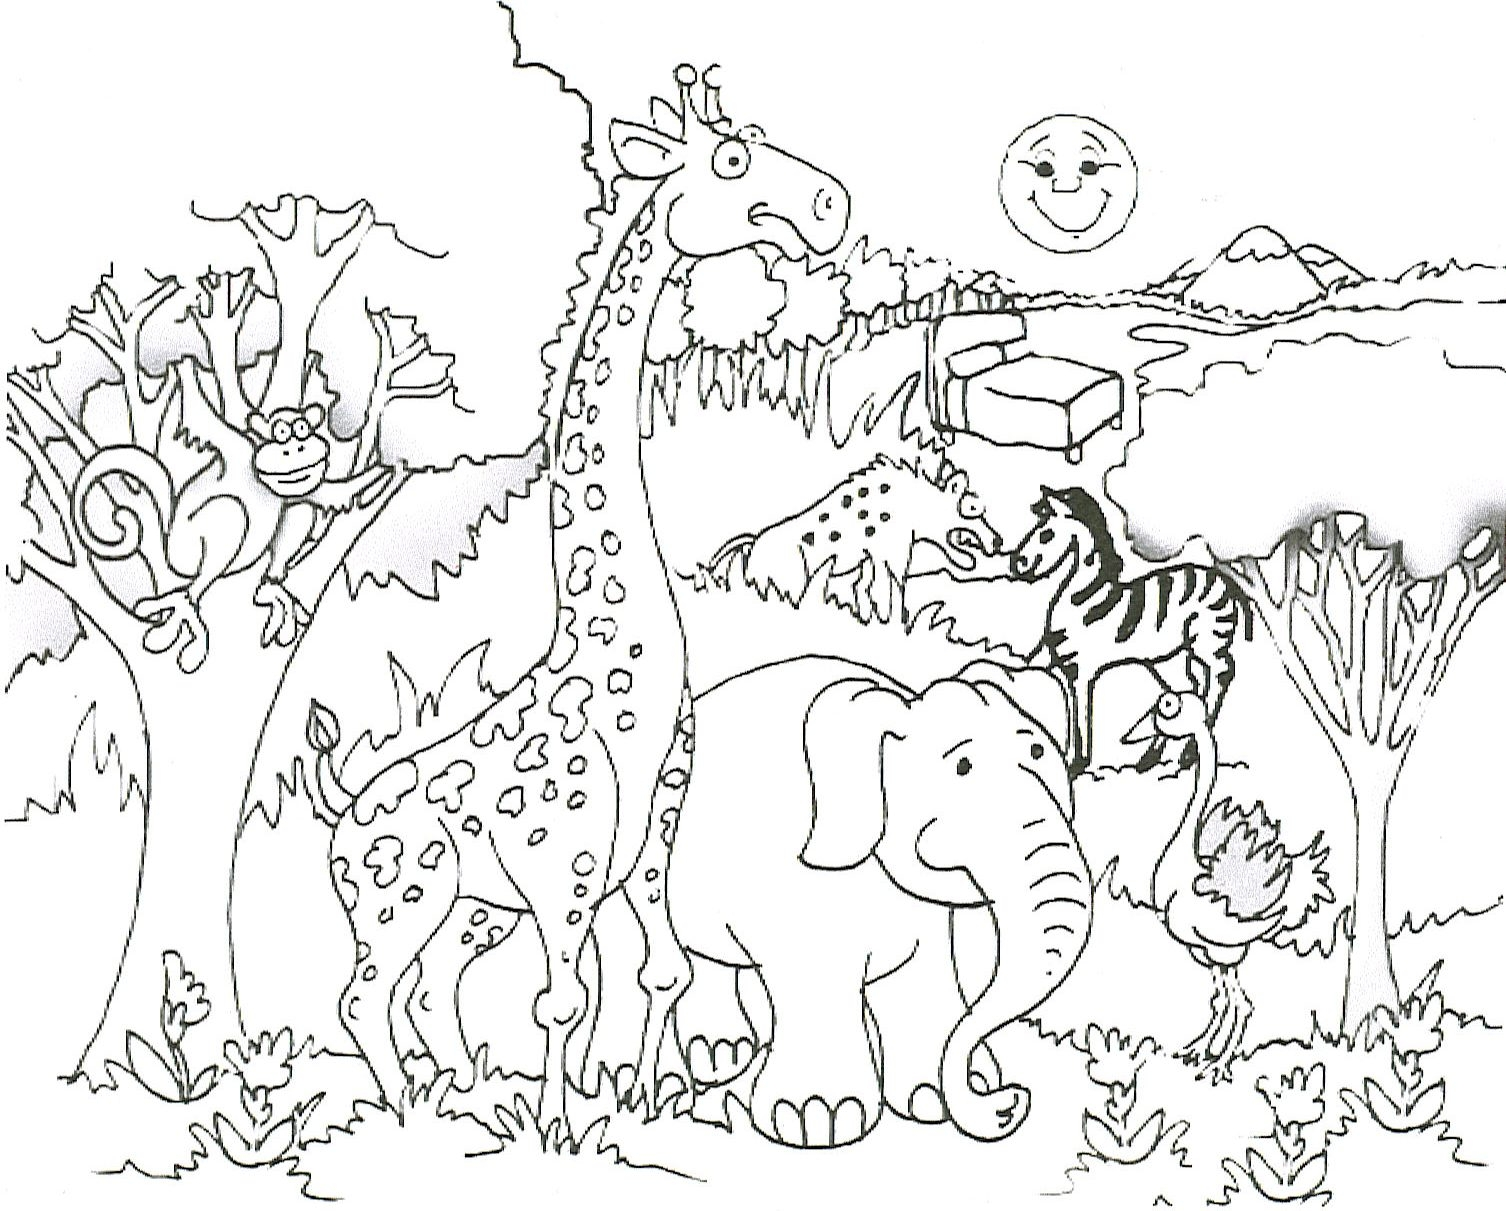 giraffe coloring page picture - Giraffes Coloring Pages